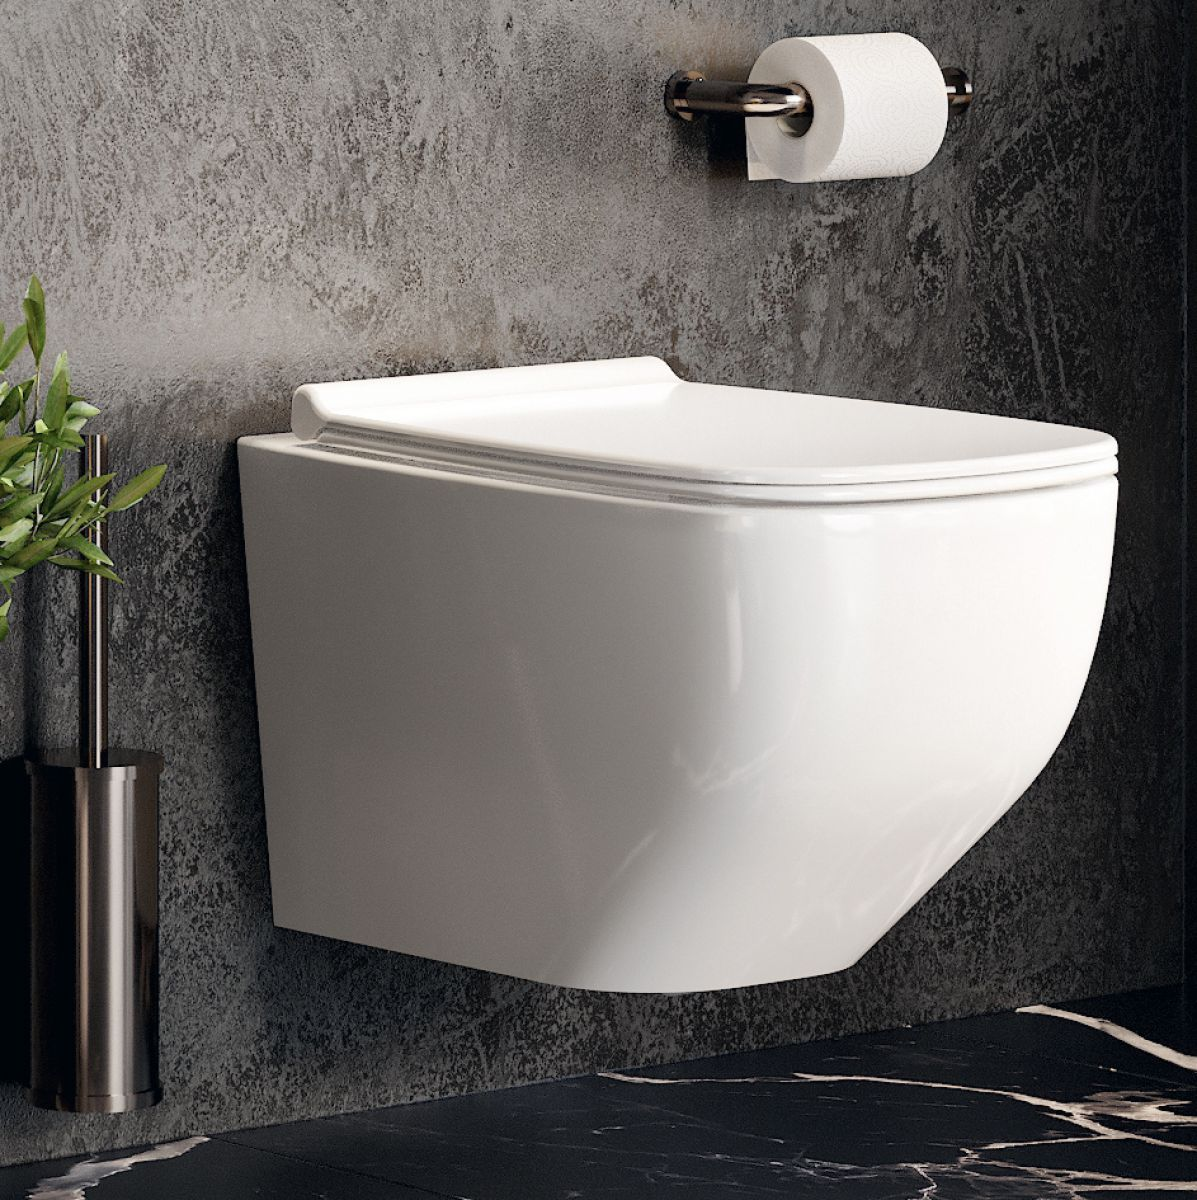 image example of a wall hung toilet